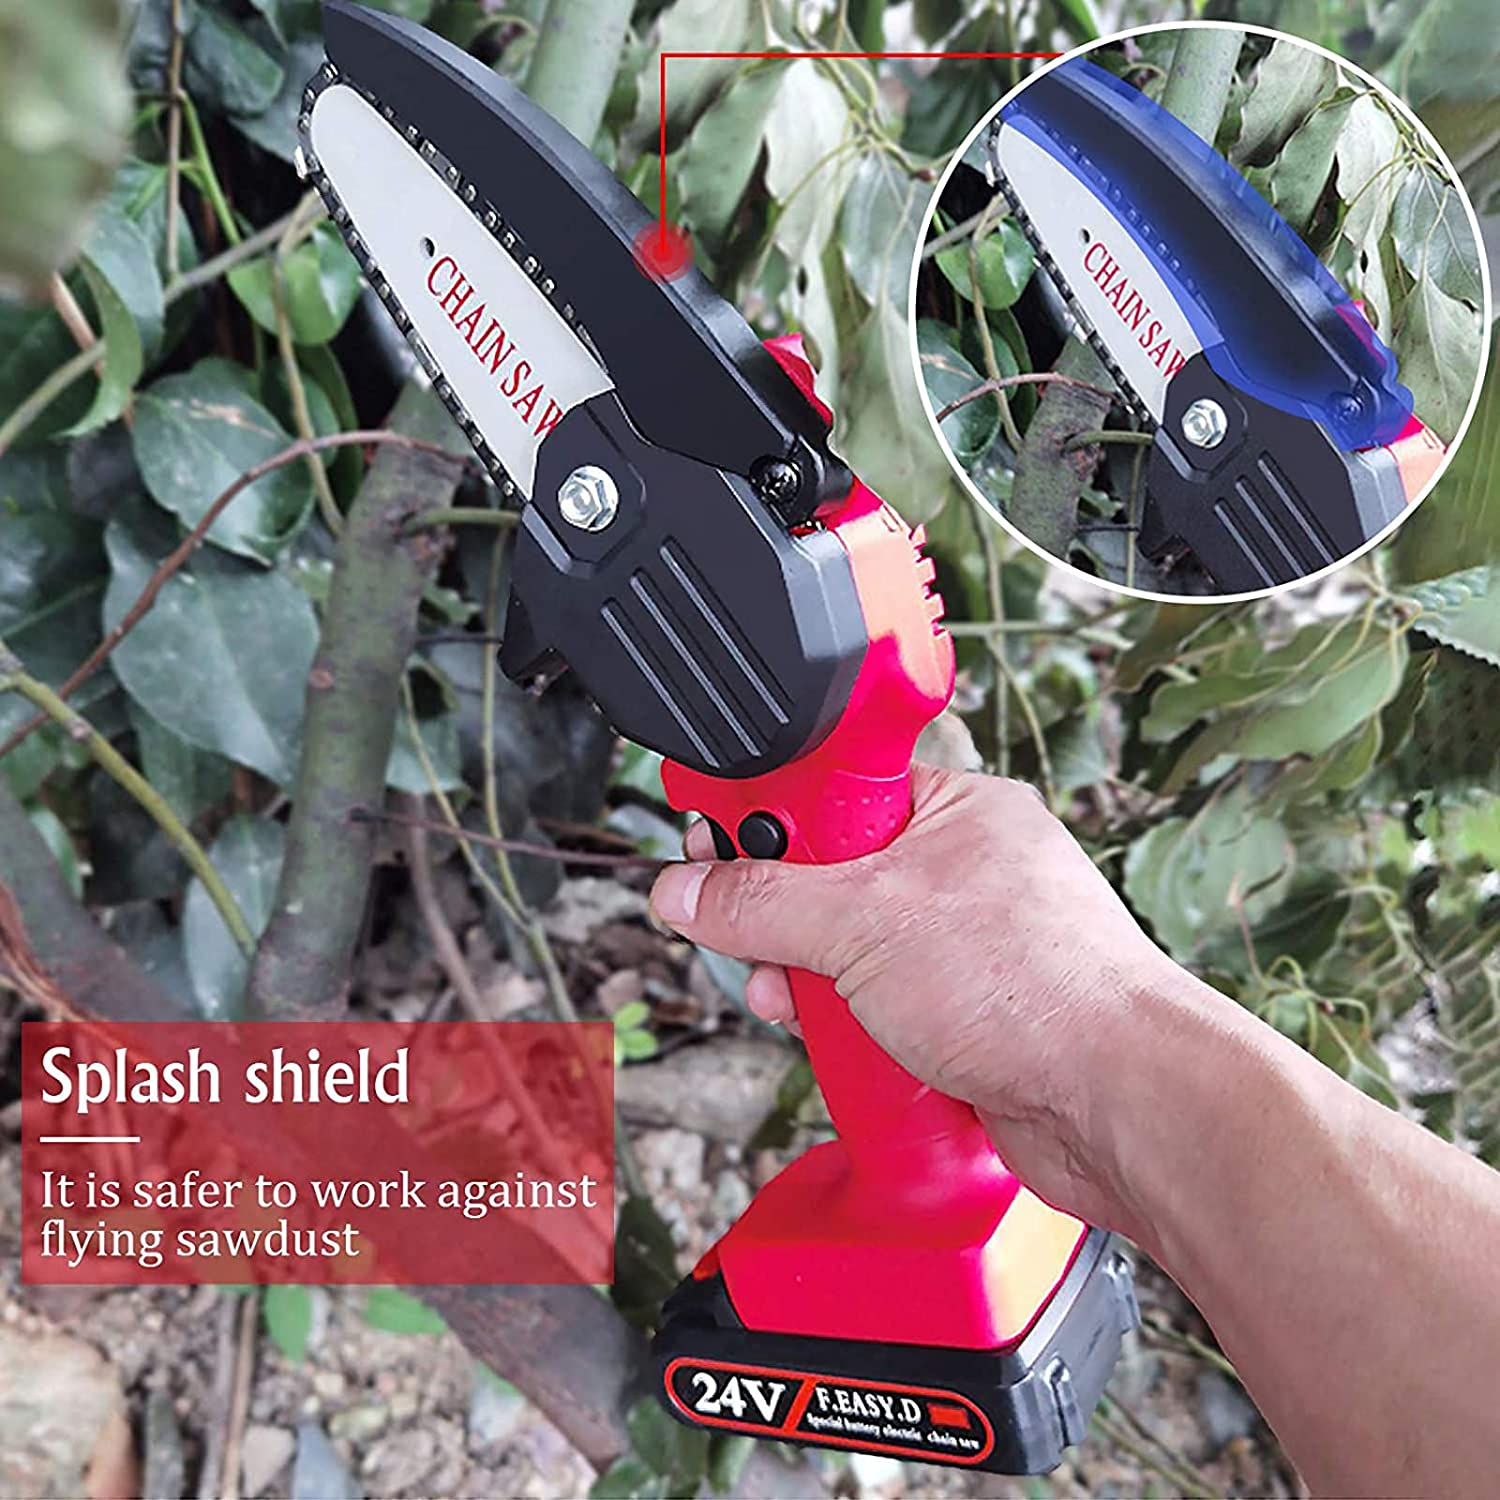 Tree Pruning and Garden XMSTORE Mini Chainsaw Cordless 4-Inch Electric Portable Chainsaw Handheld for Wood Cutting